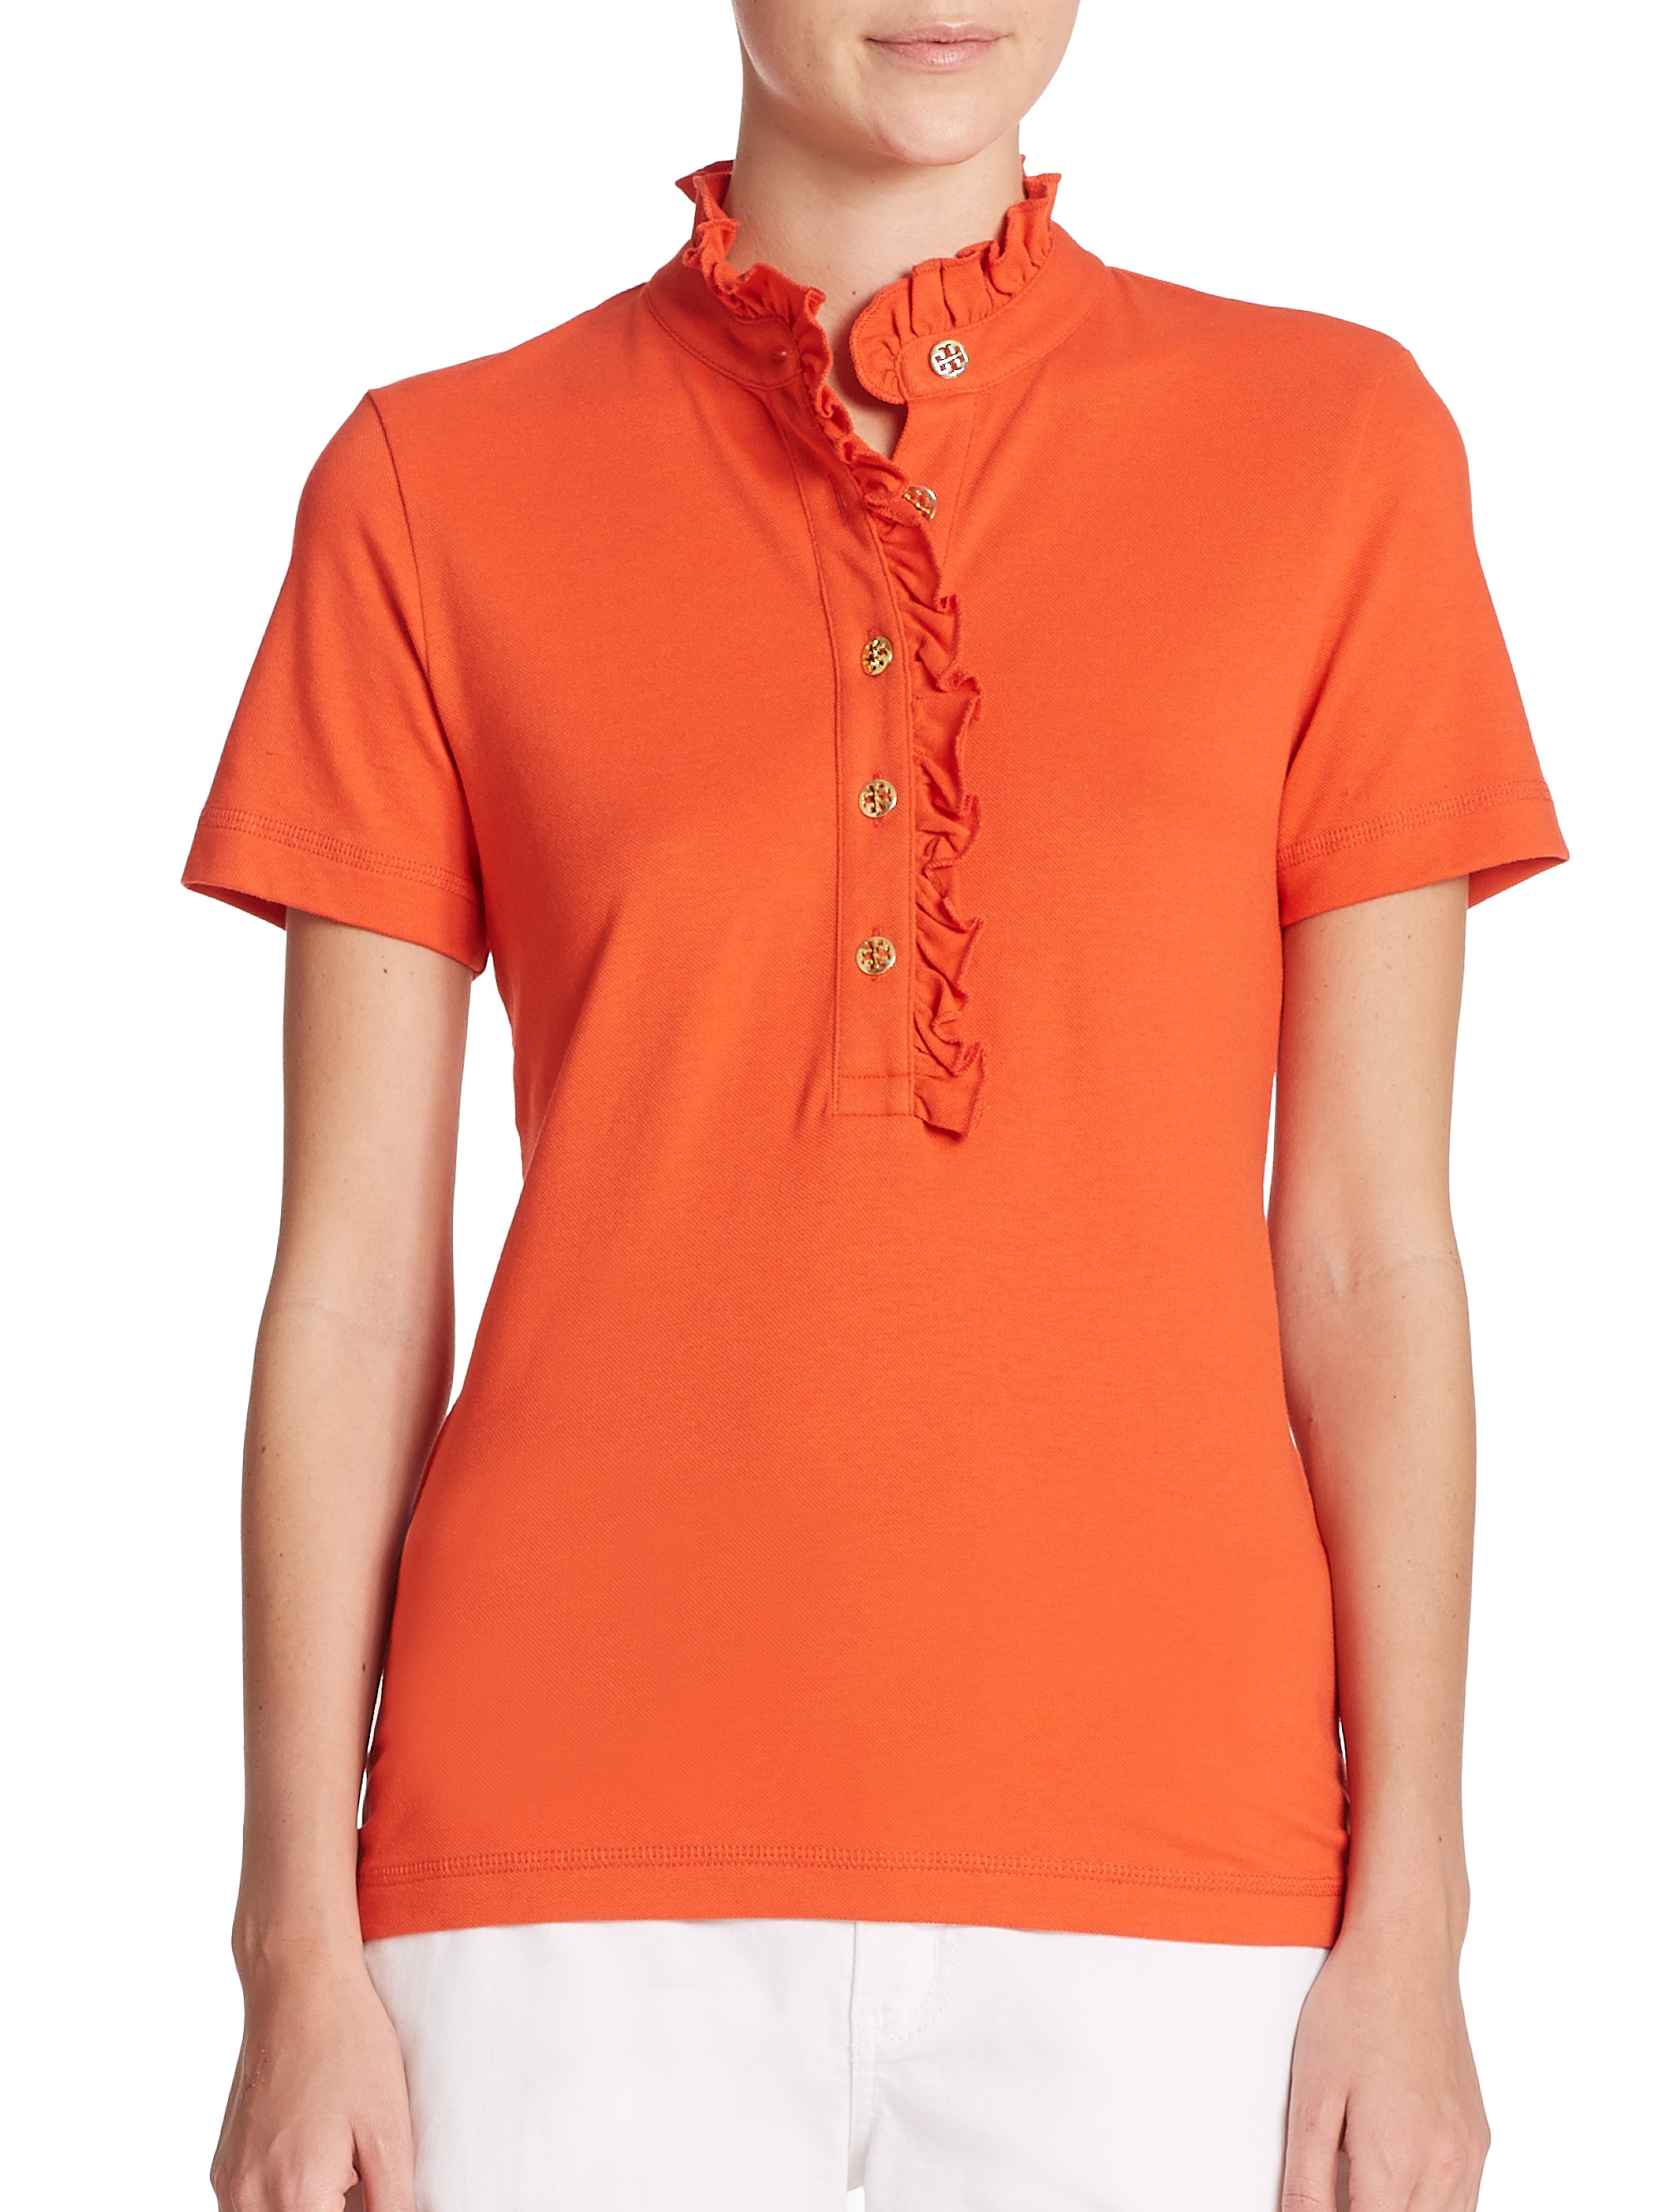 Tory burch lidia polo shirt in red lyst for Tory burch t shirt